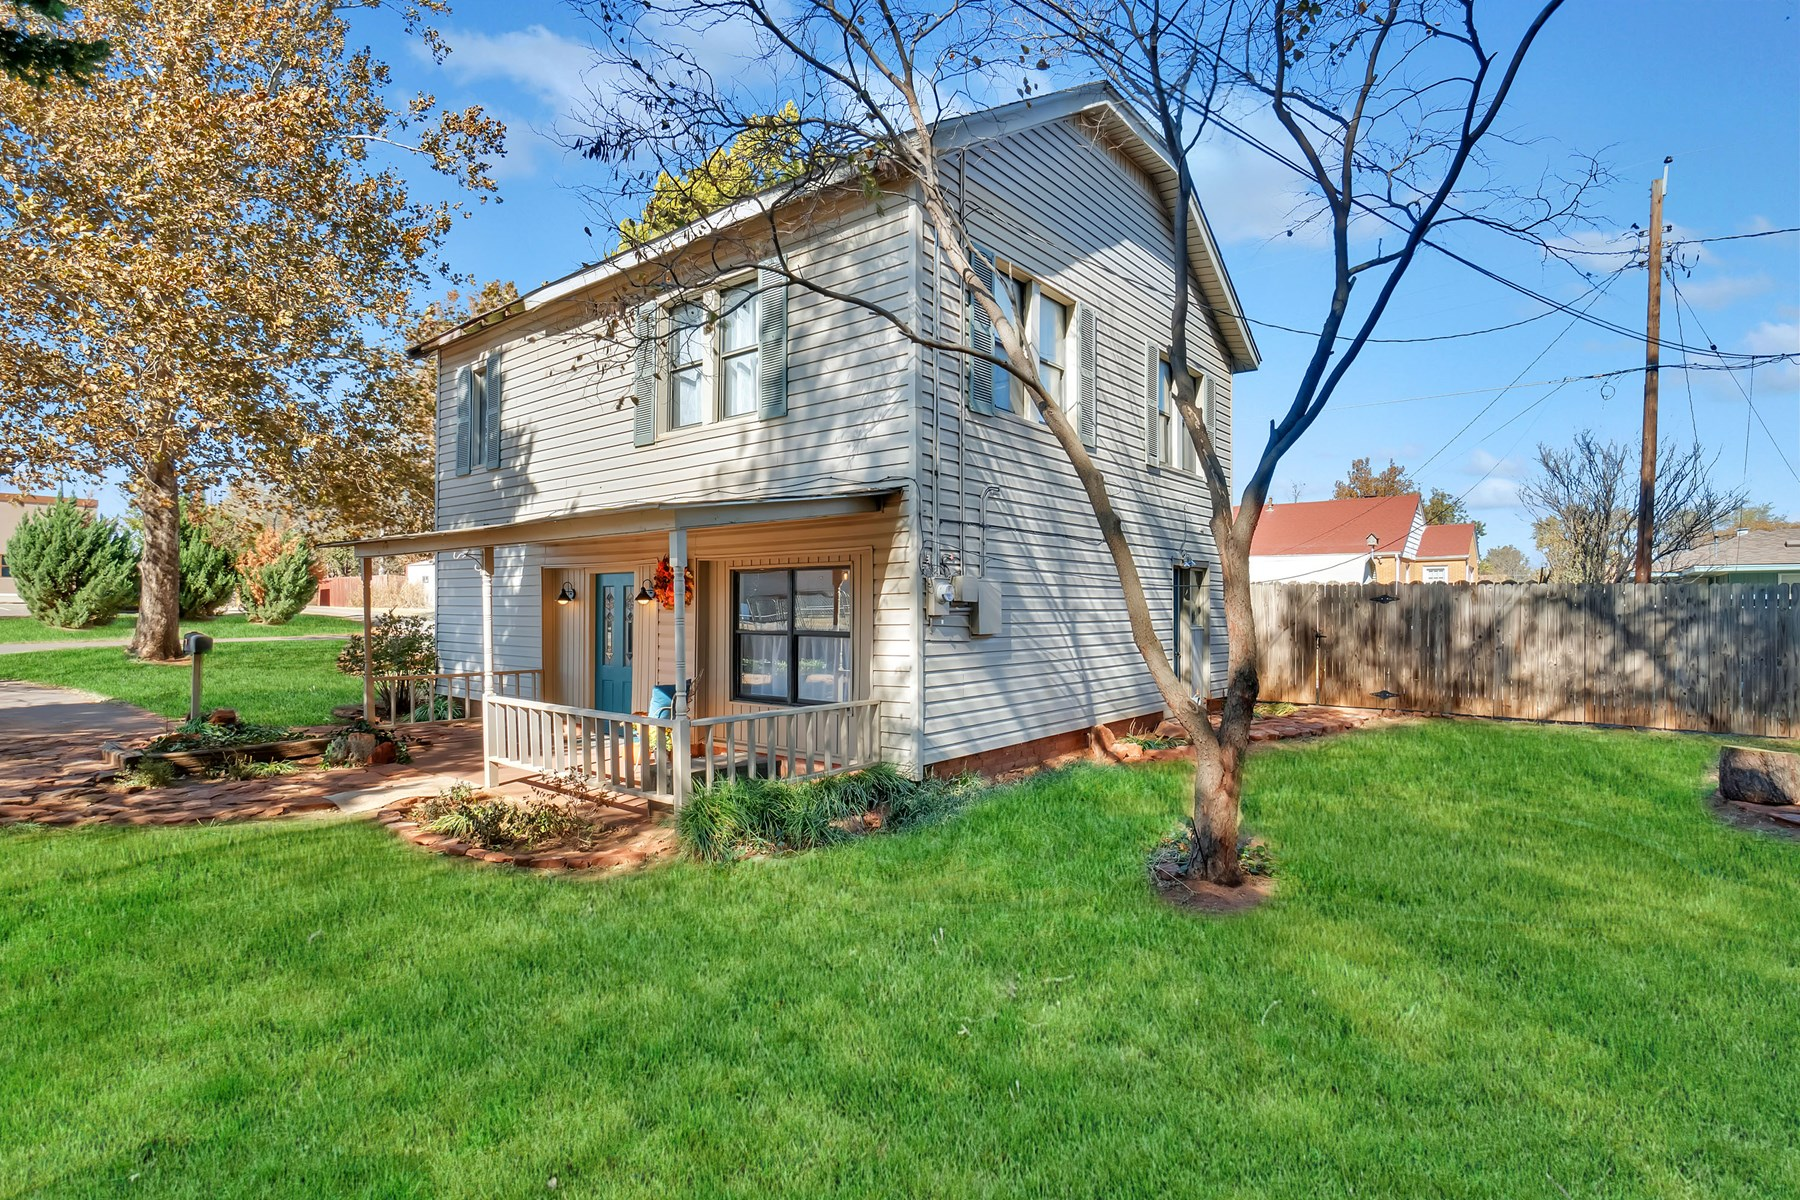 2 STORY HOME FOR SALE IN ELK CITY